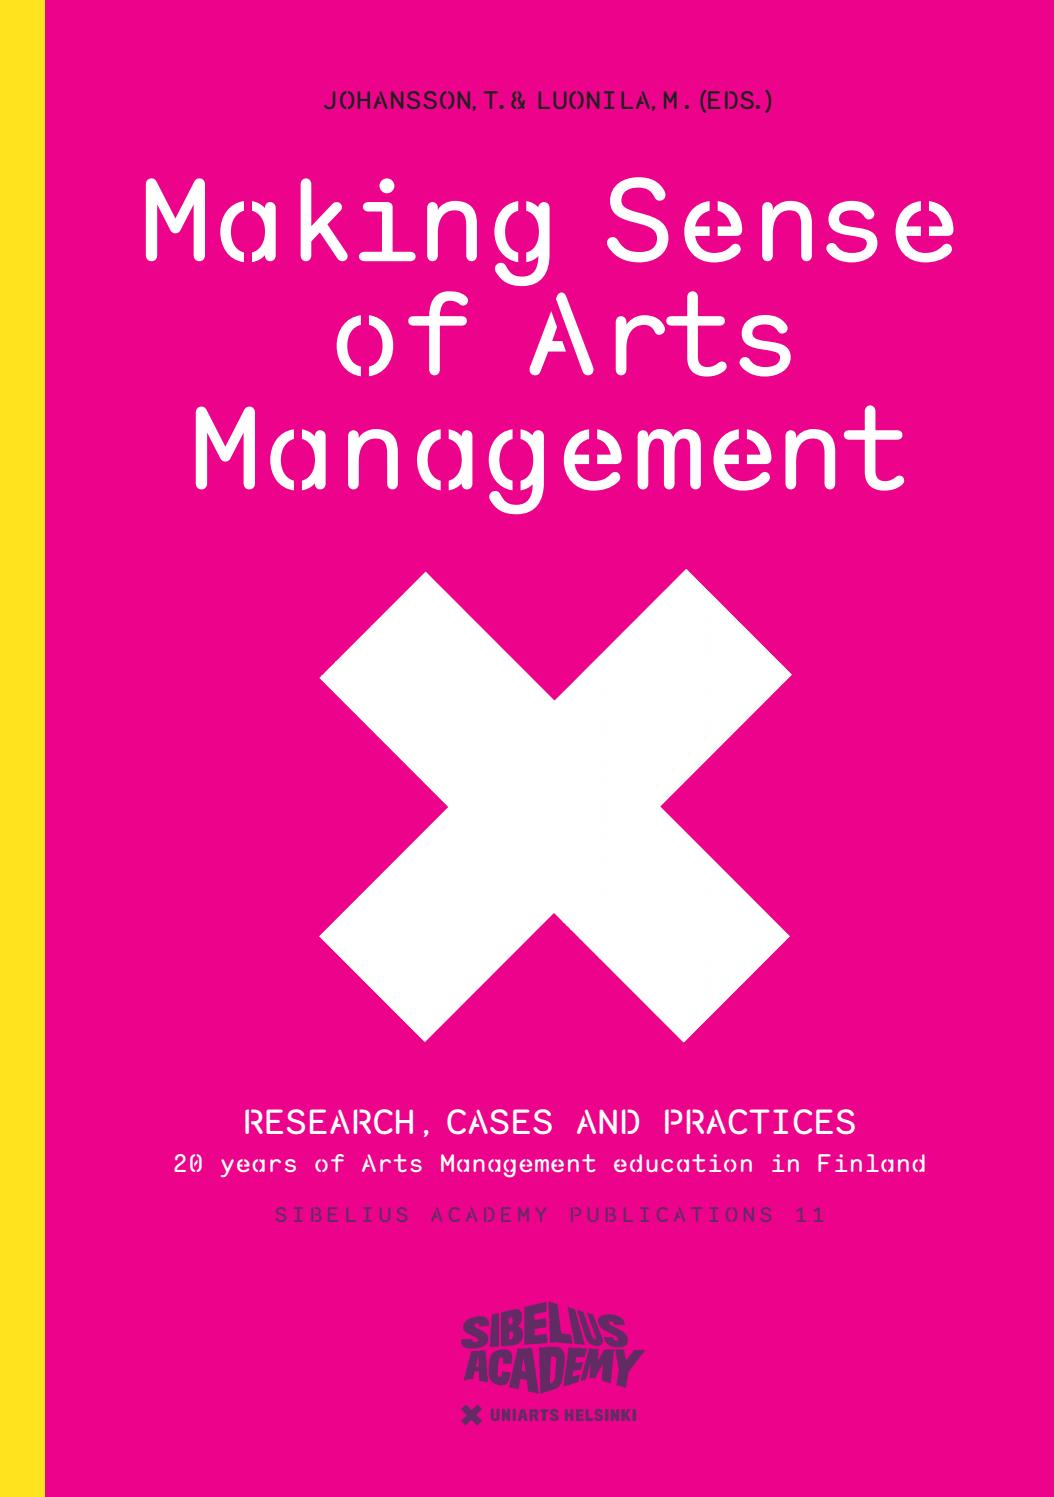 making sense of arts management research cases and practices by rh issuu com